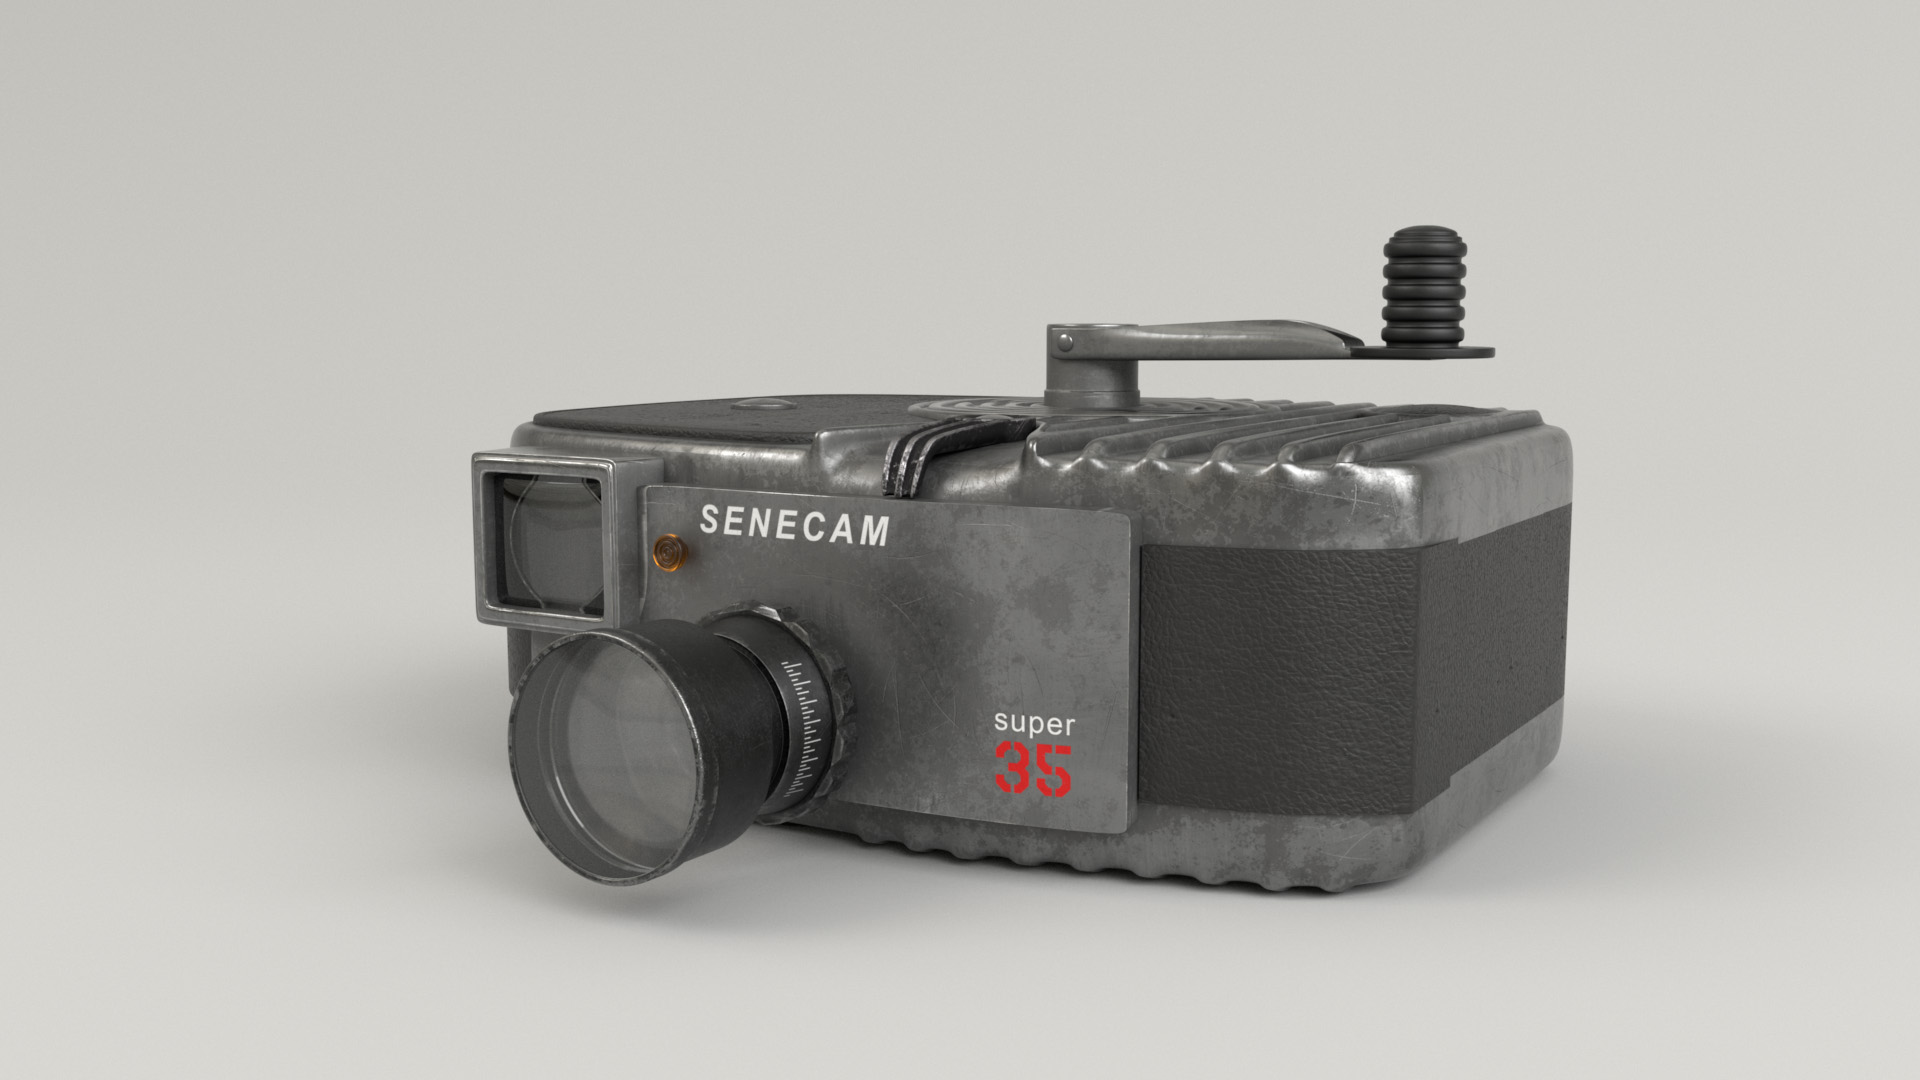 Figure 22: Camera prop front view. Note all of the layers of refraction and reflection in the lens.